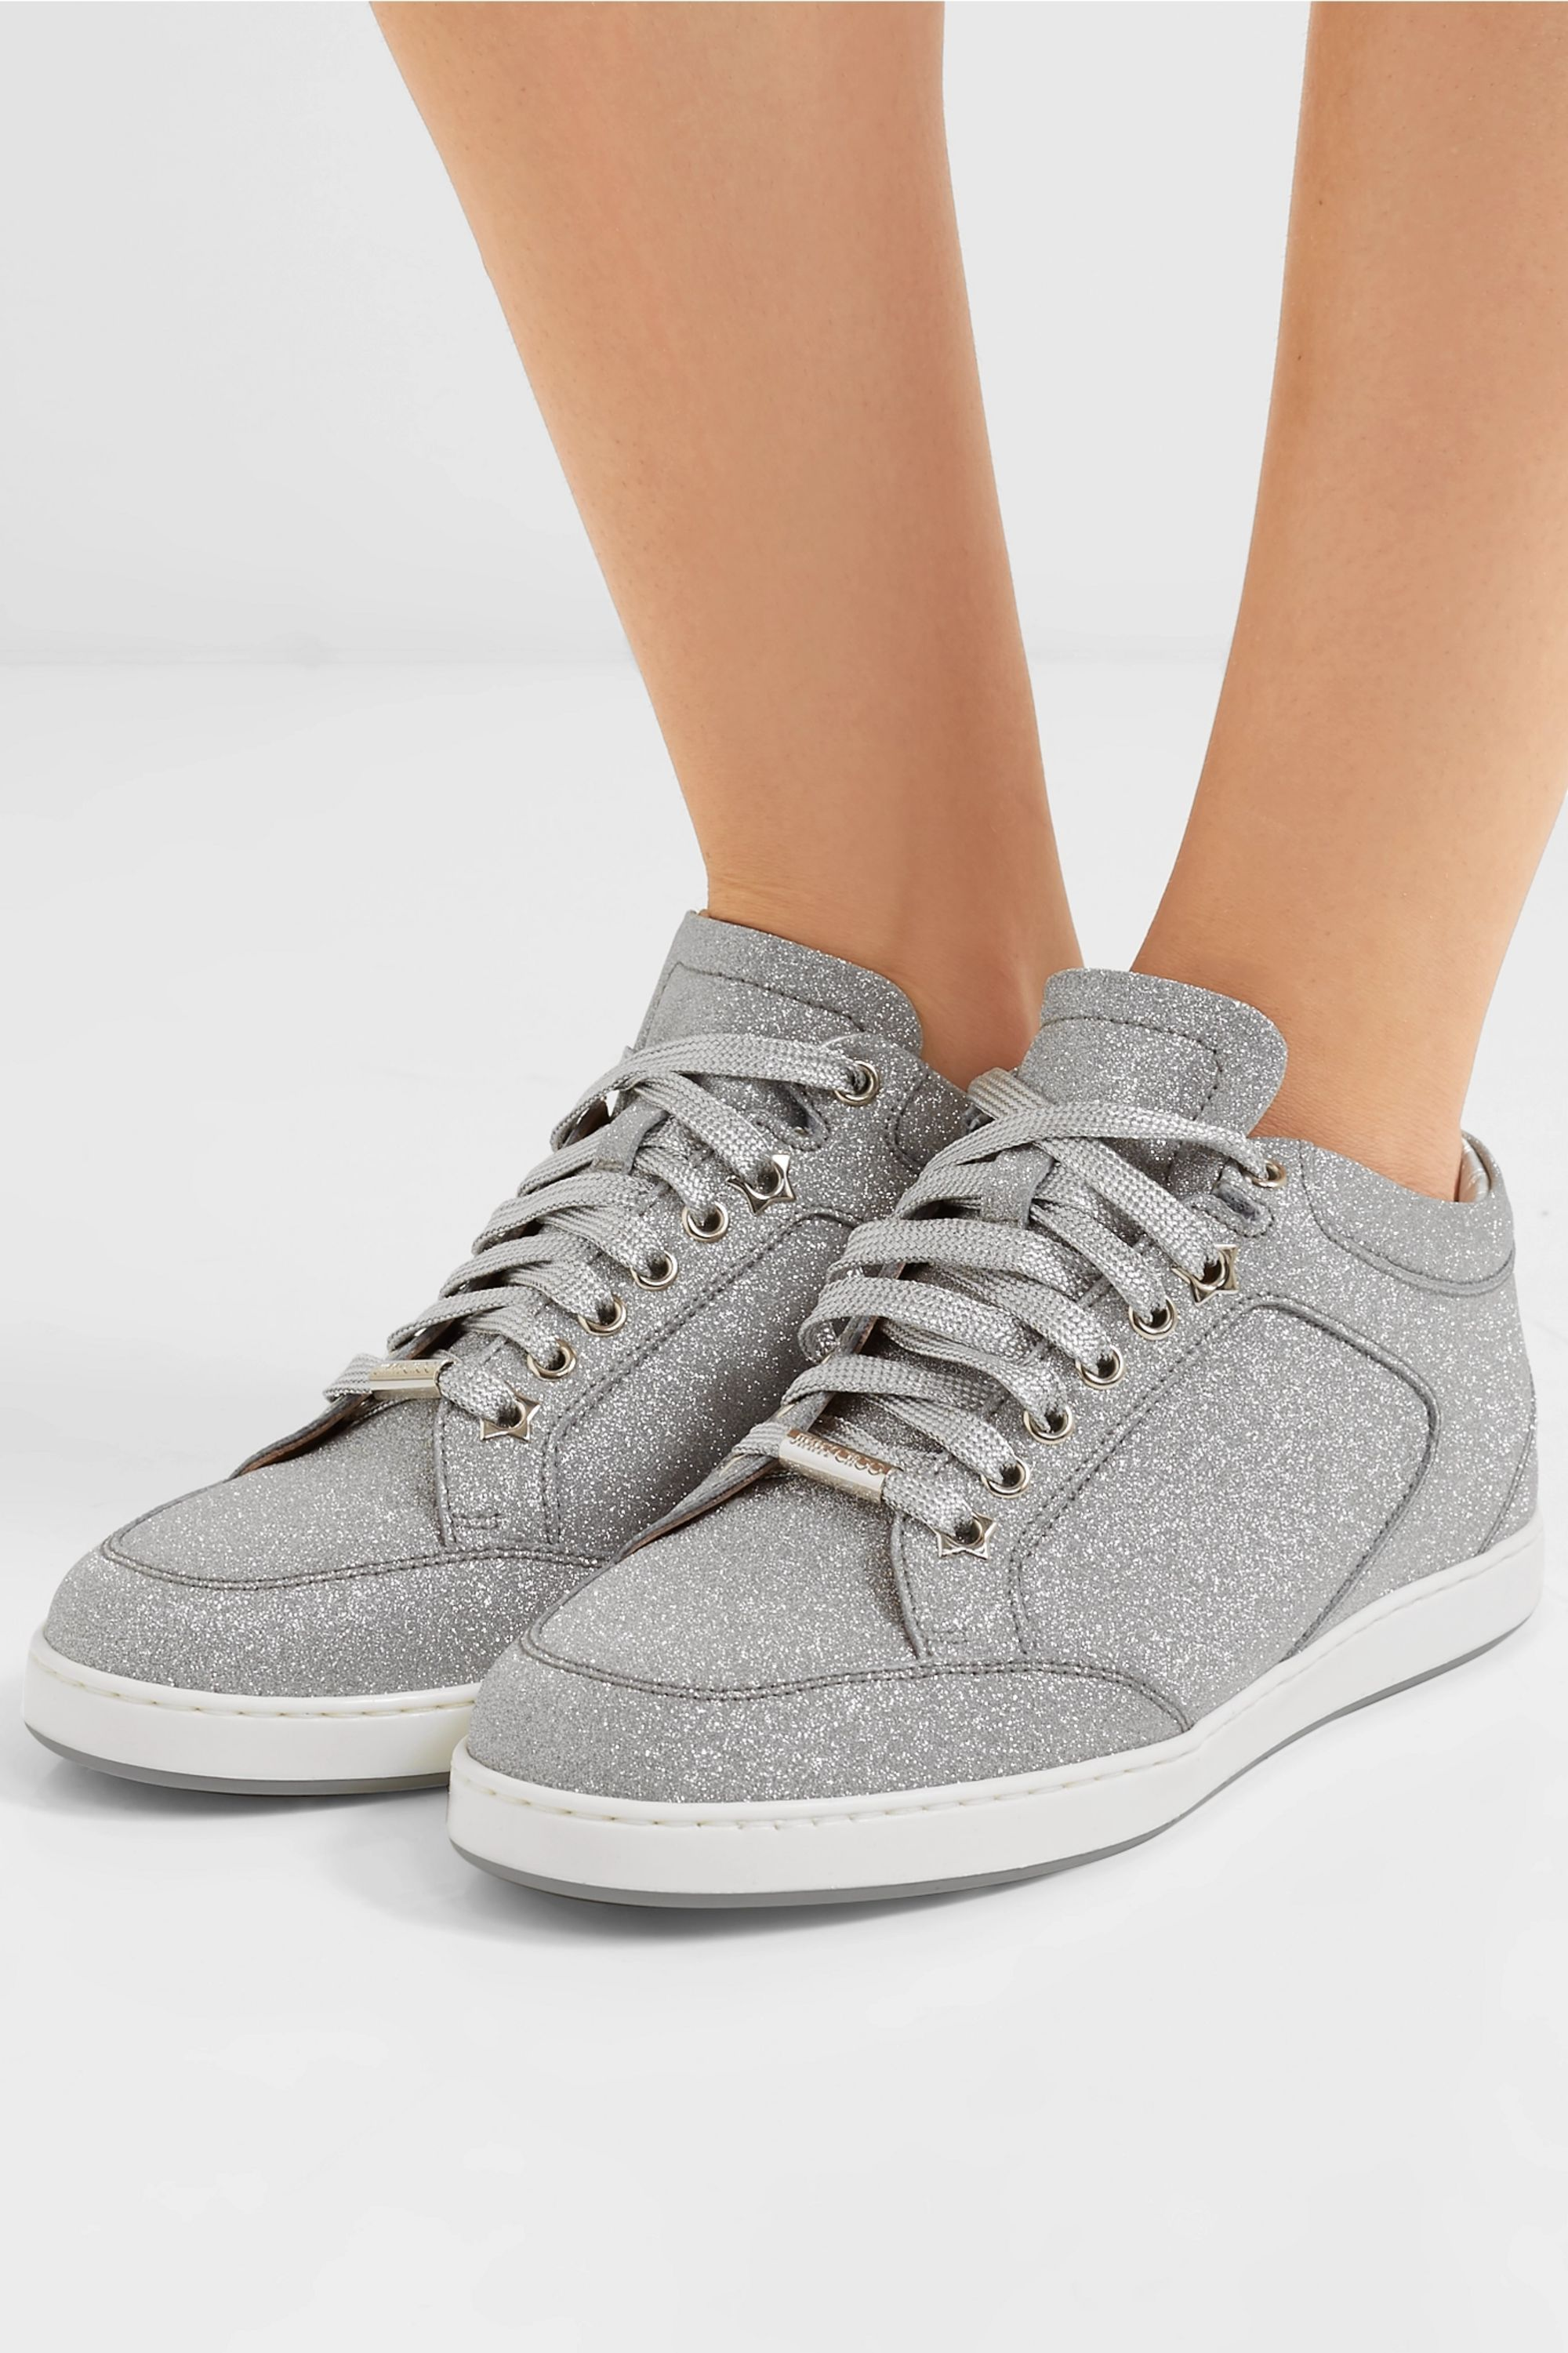 Silver Miami glittered leather sneakers